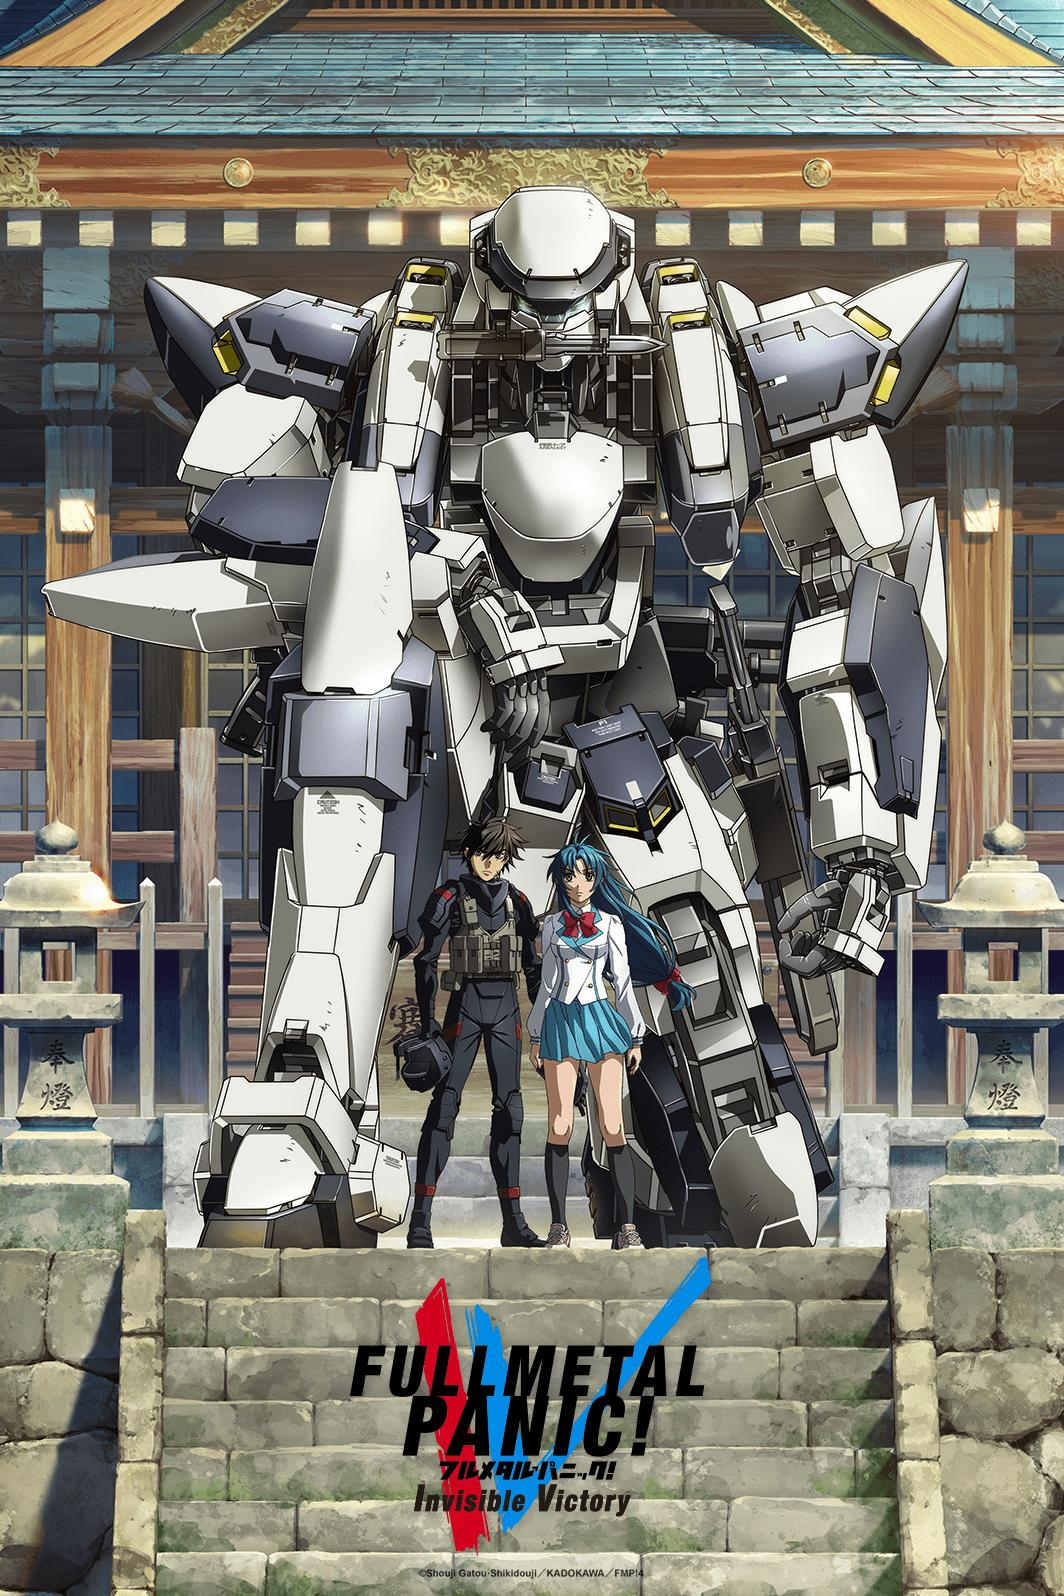 Full Metal Panic! Invisible Victory - Watch on Crunchyroll